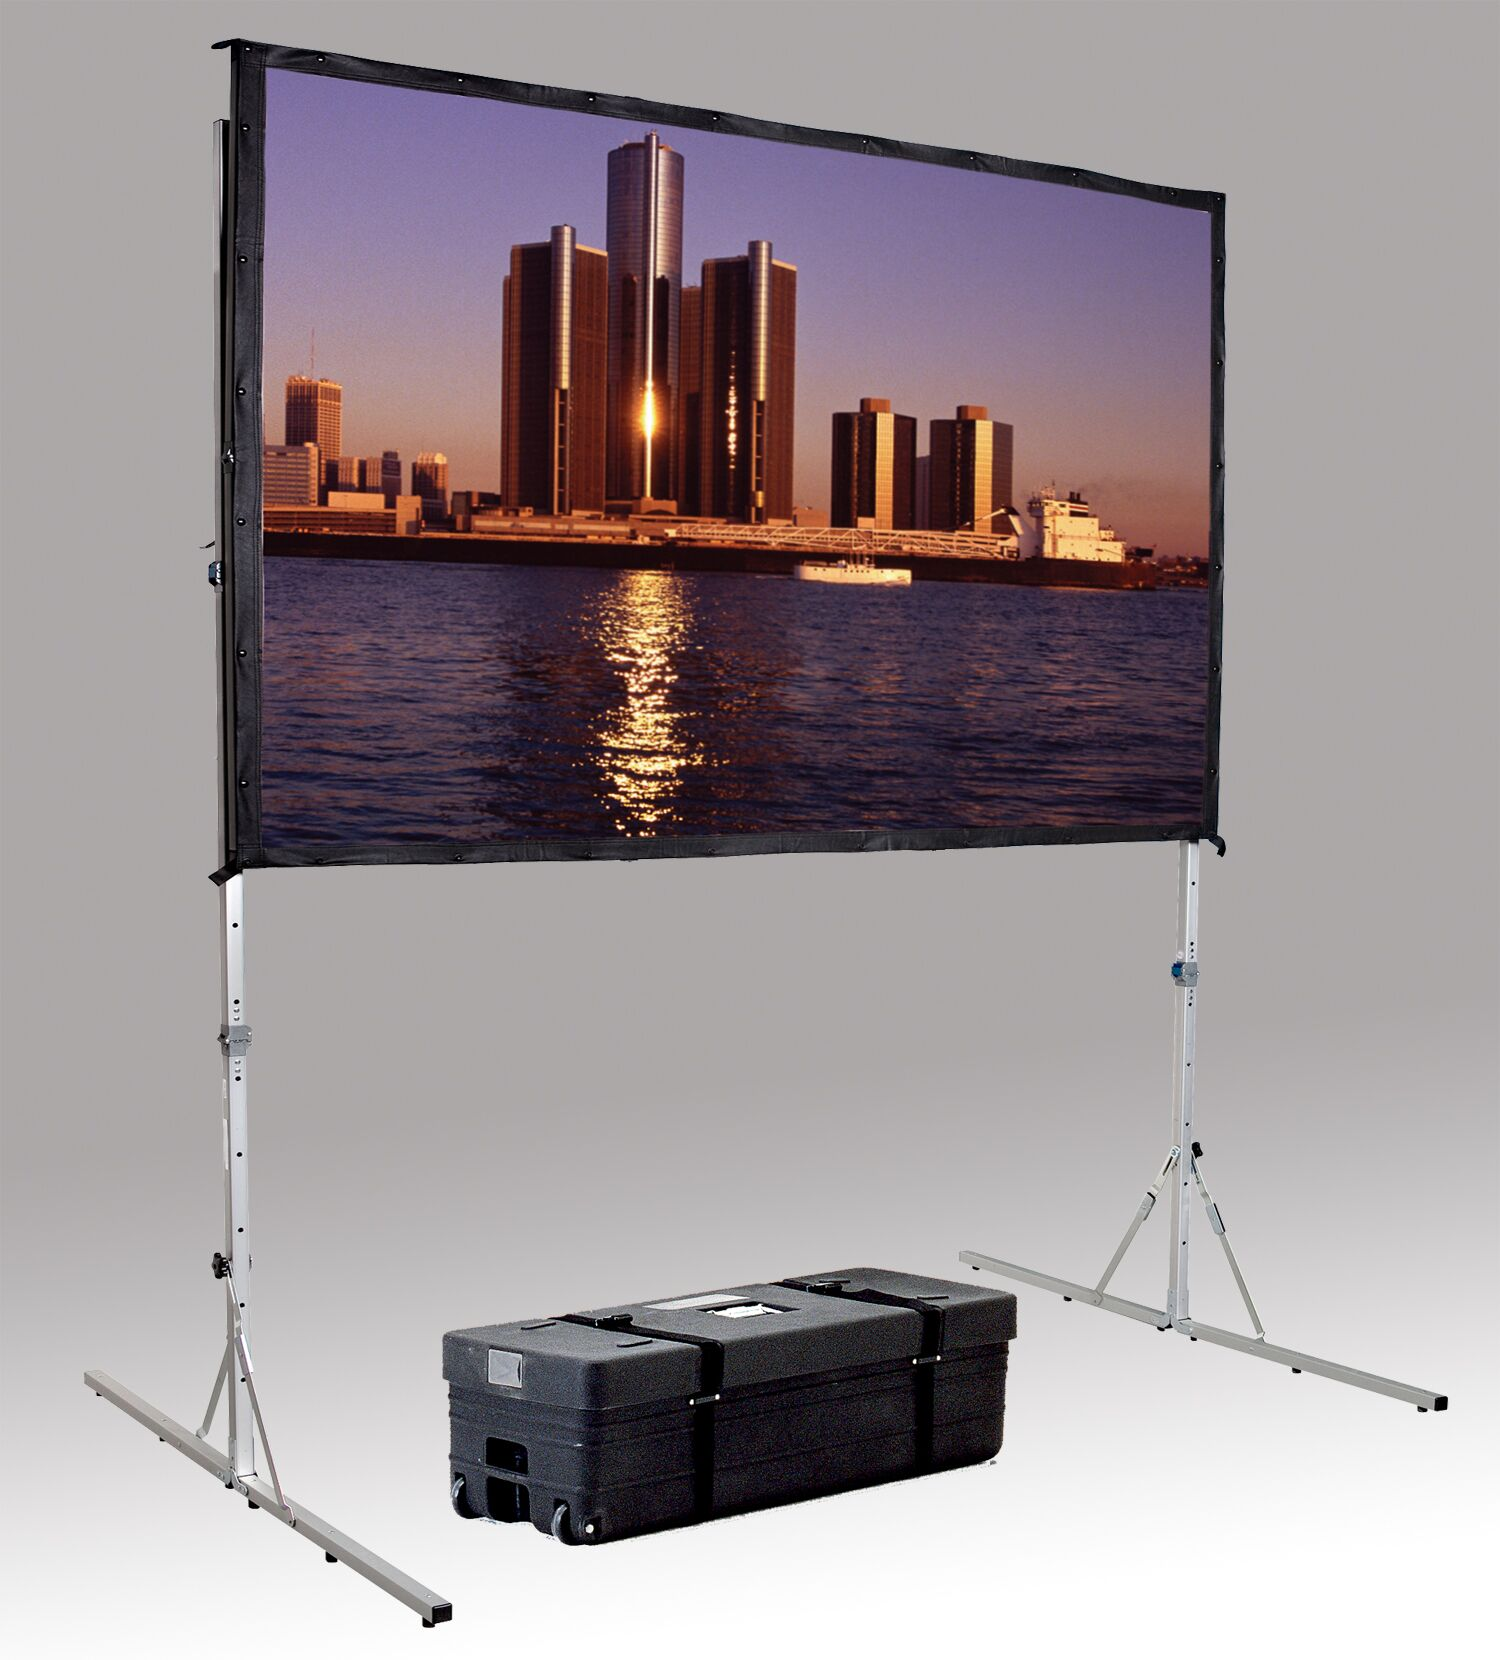 Fast Fold Deluxe Portable Projection Screen Viewing Area: 92